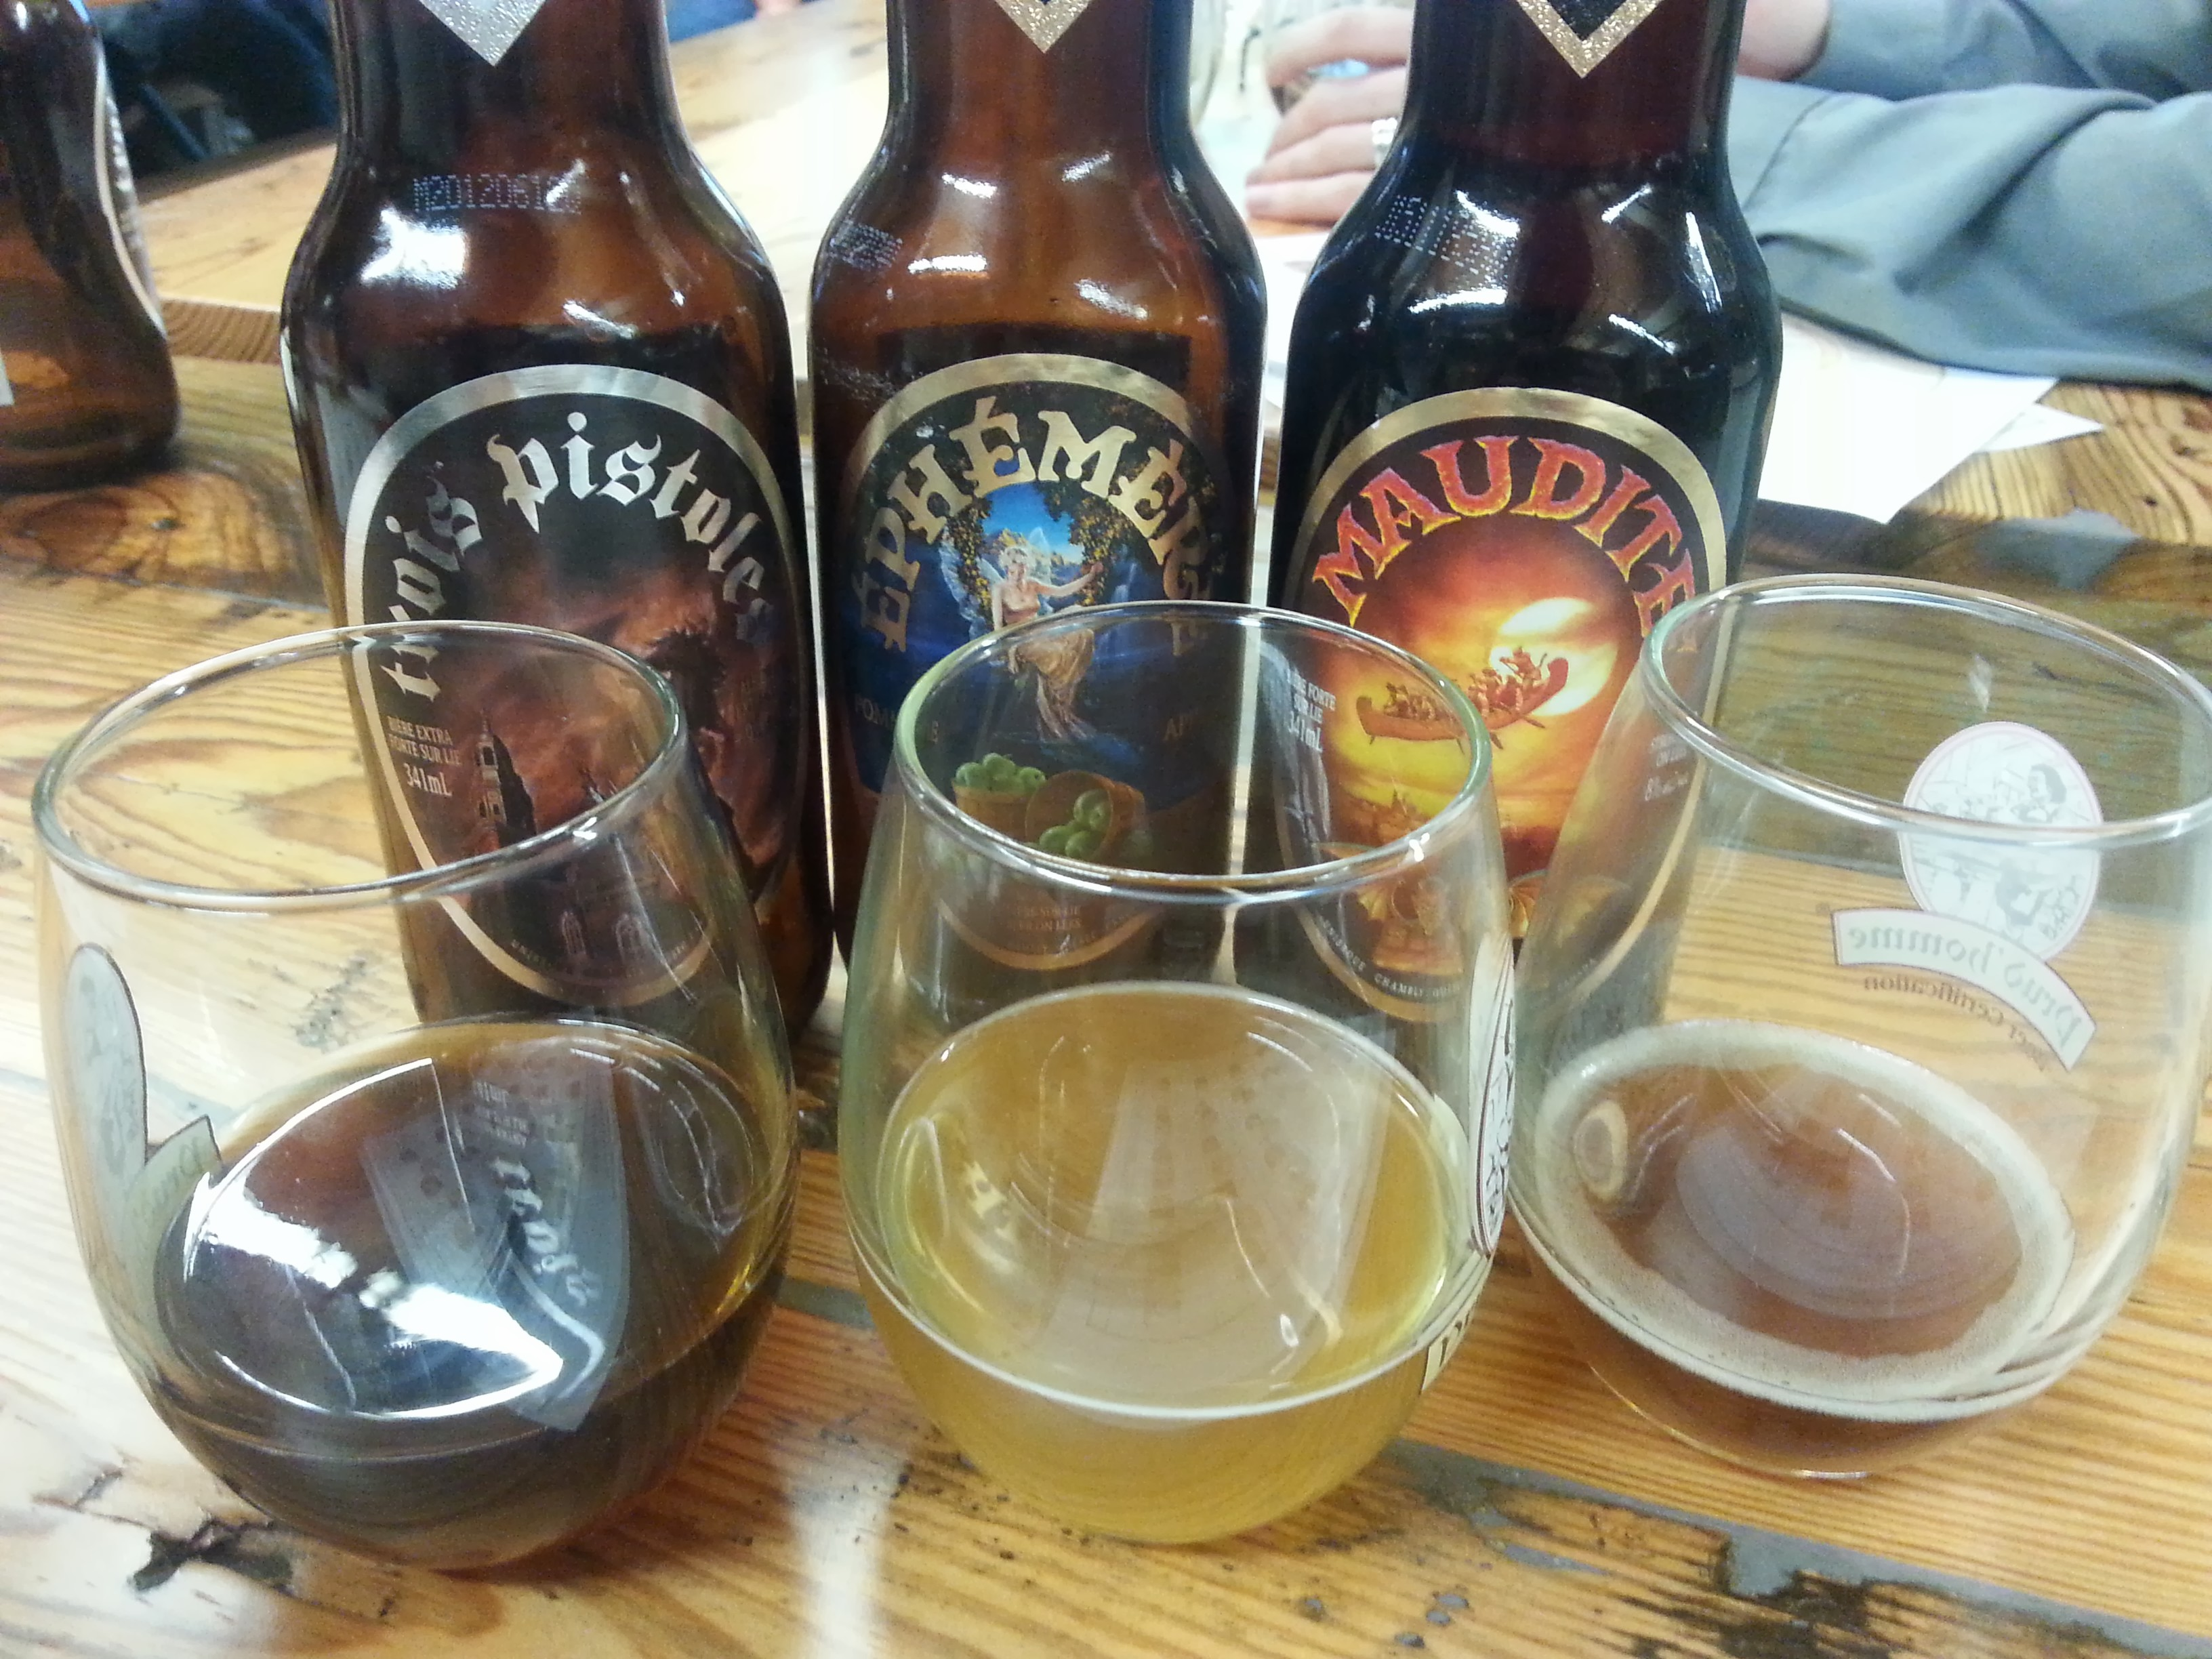 Aged Unibroue beers